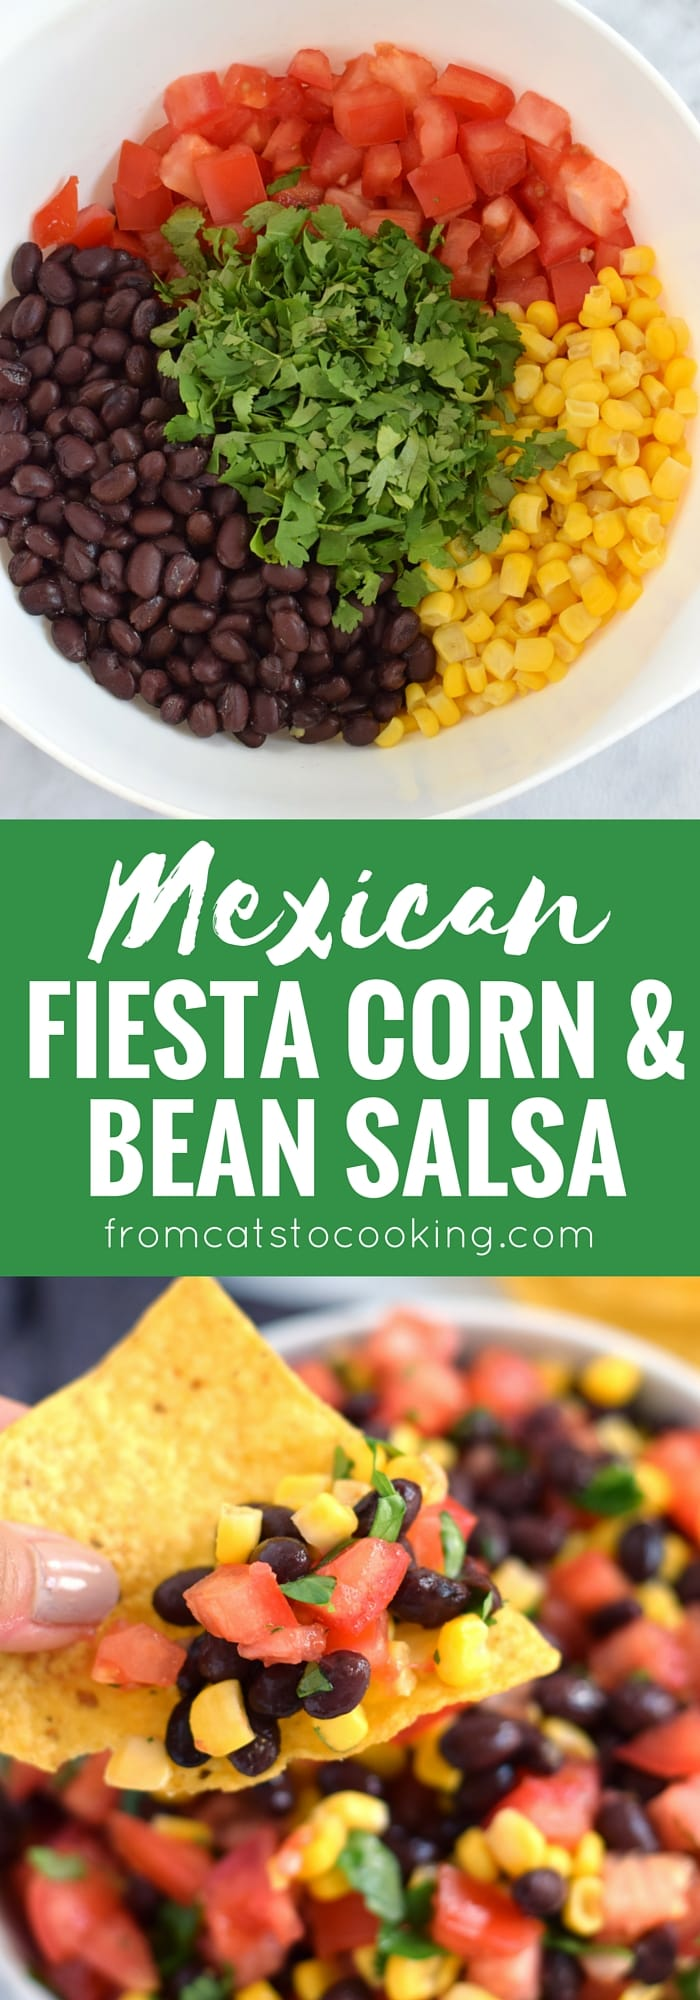 A super easy, bright and fresh Mexican Fiesta Corn & Bean Salsa recipe that takes only 10 minutes to make! Is gluten free, vegetarian, vegan and perfect for the spring and summer months.